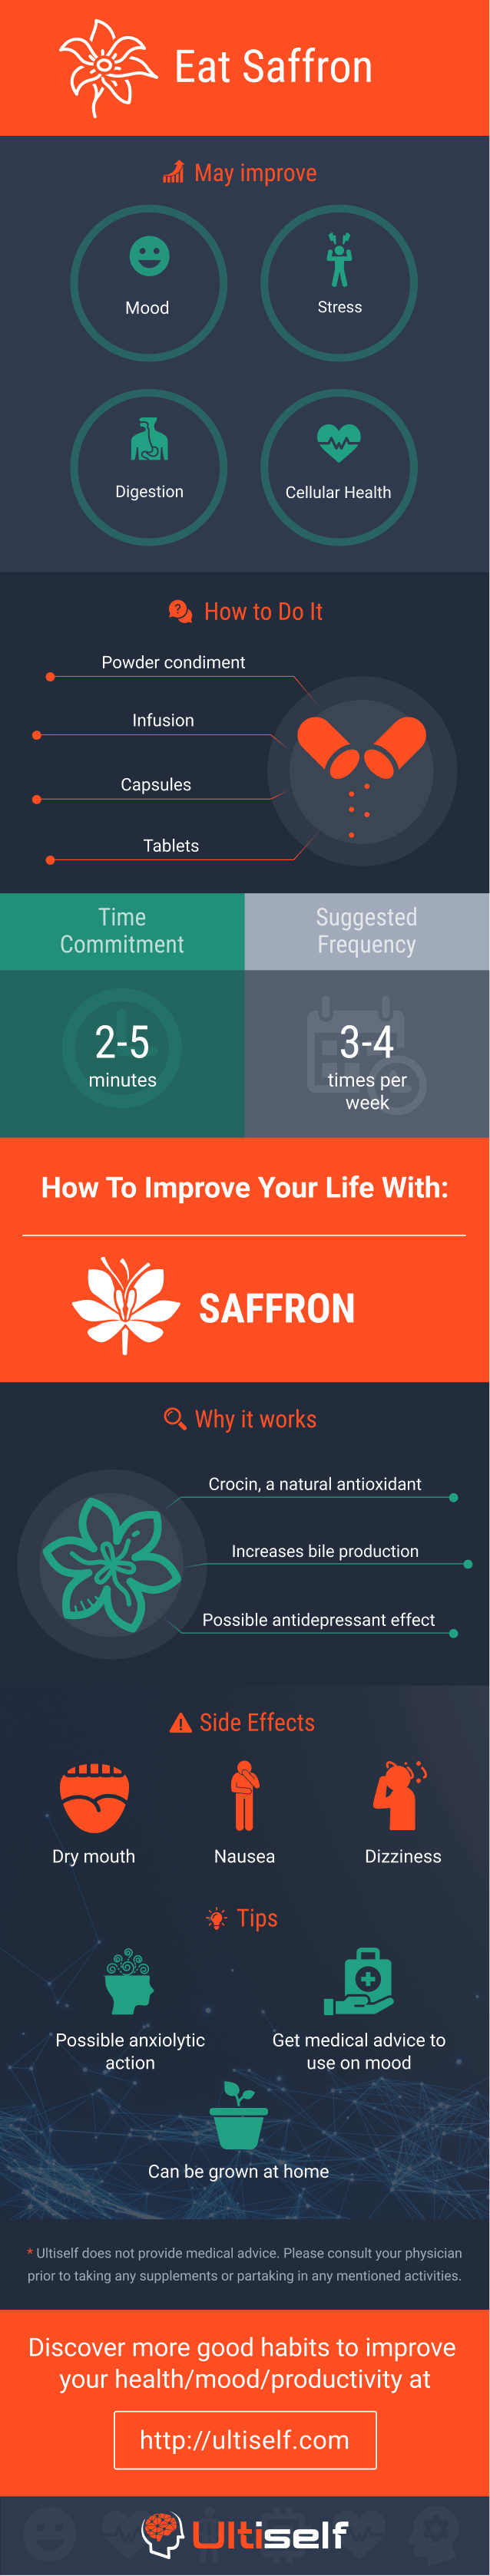 Eat Saffron infographic